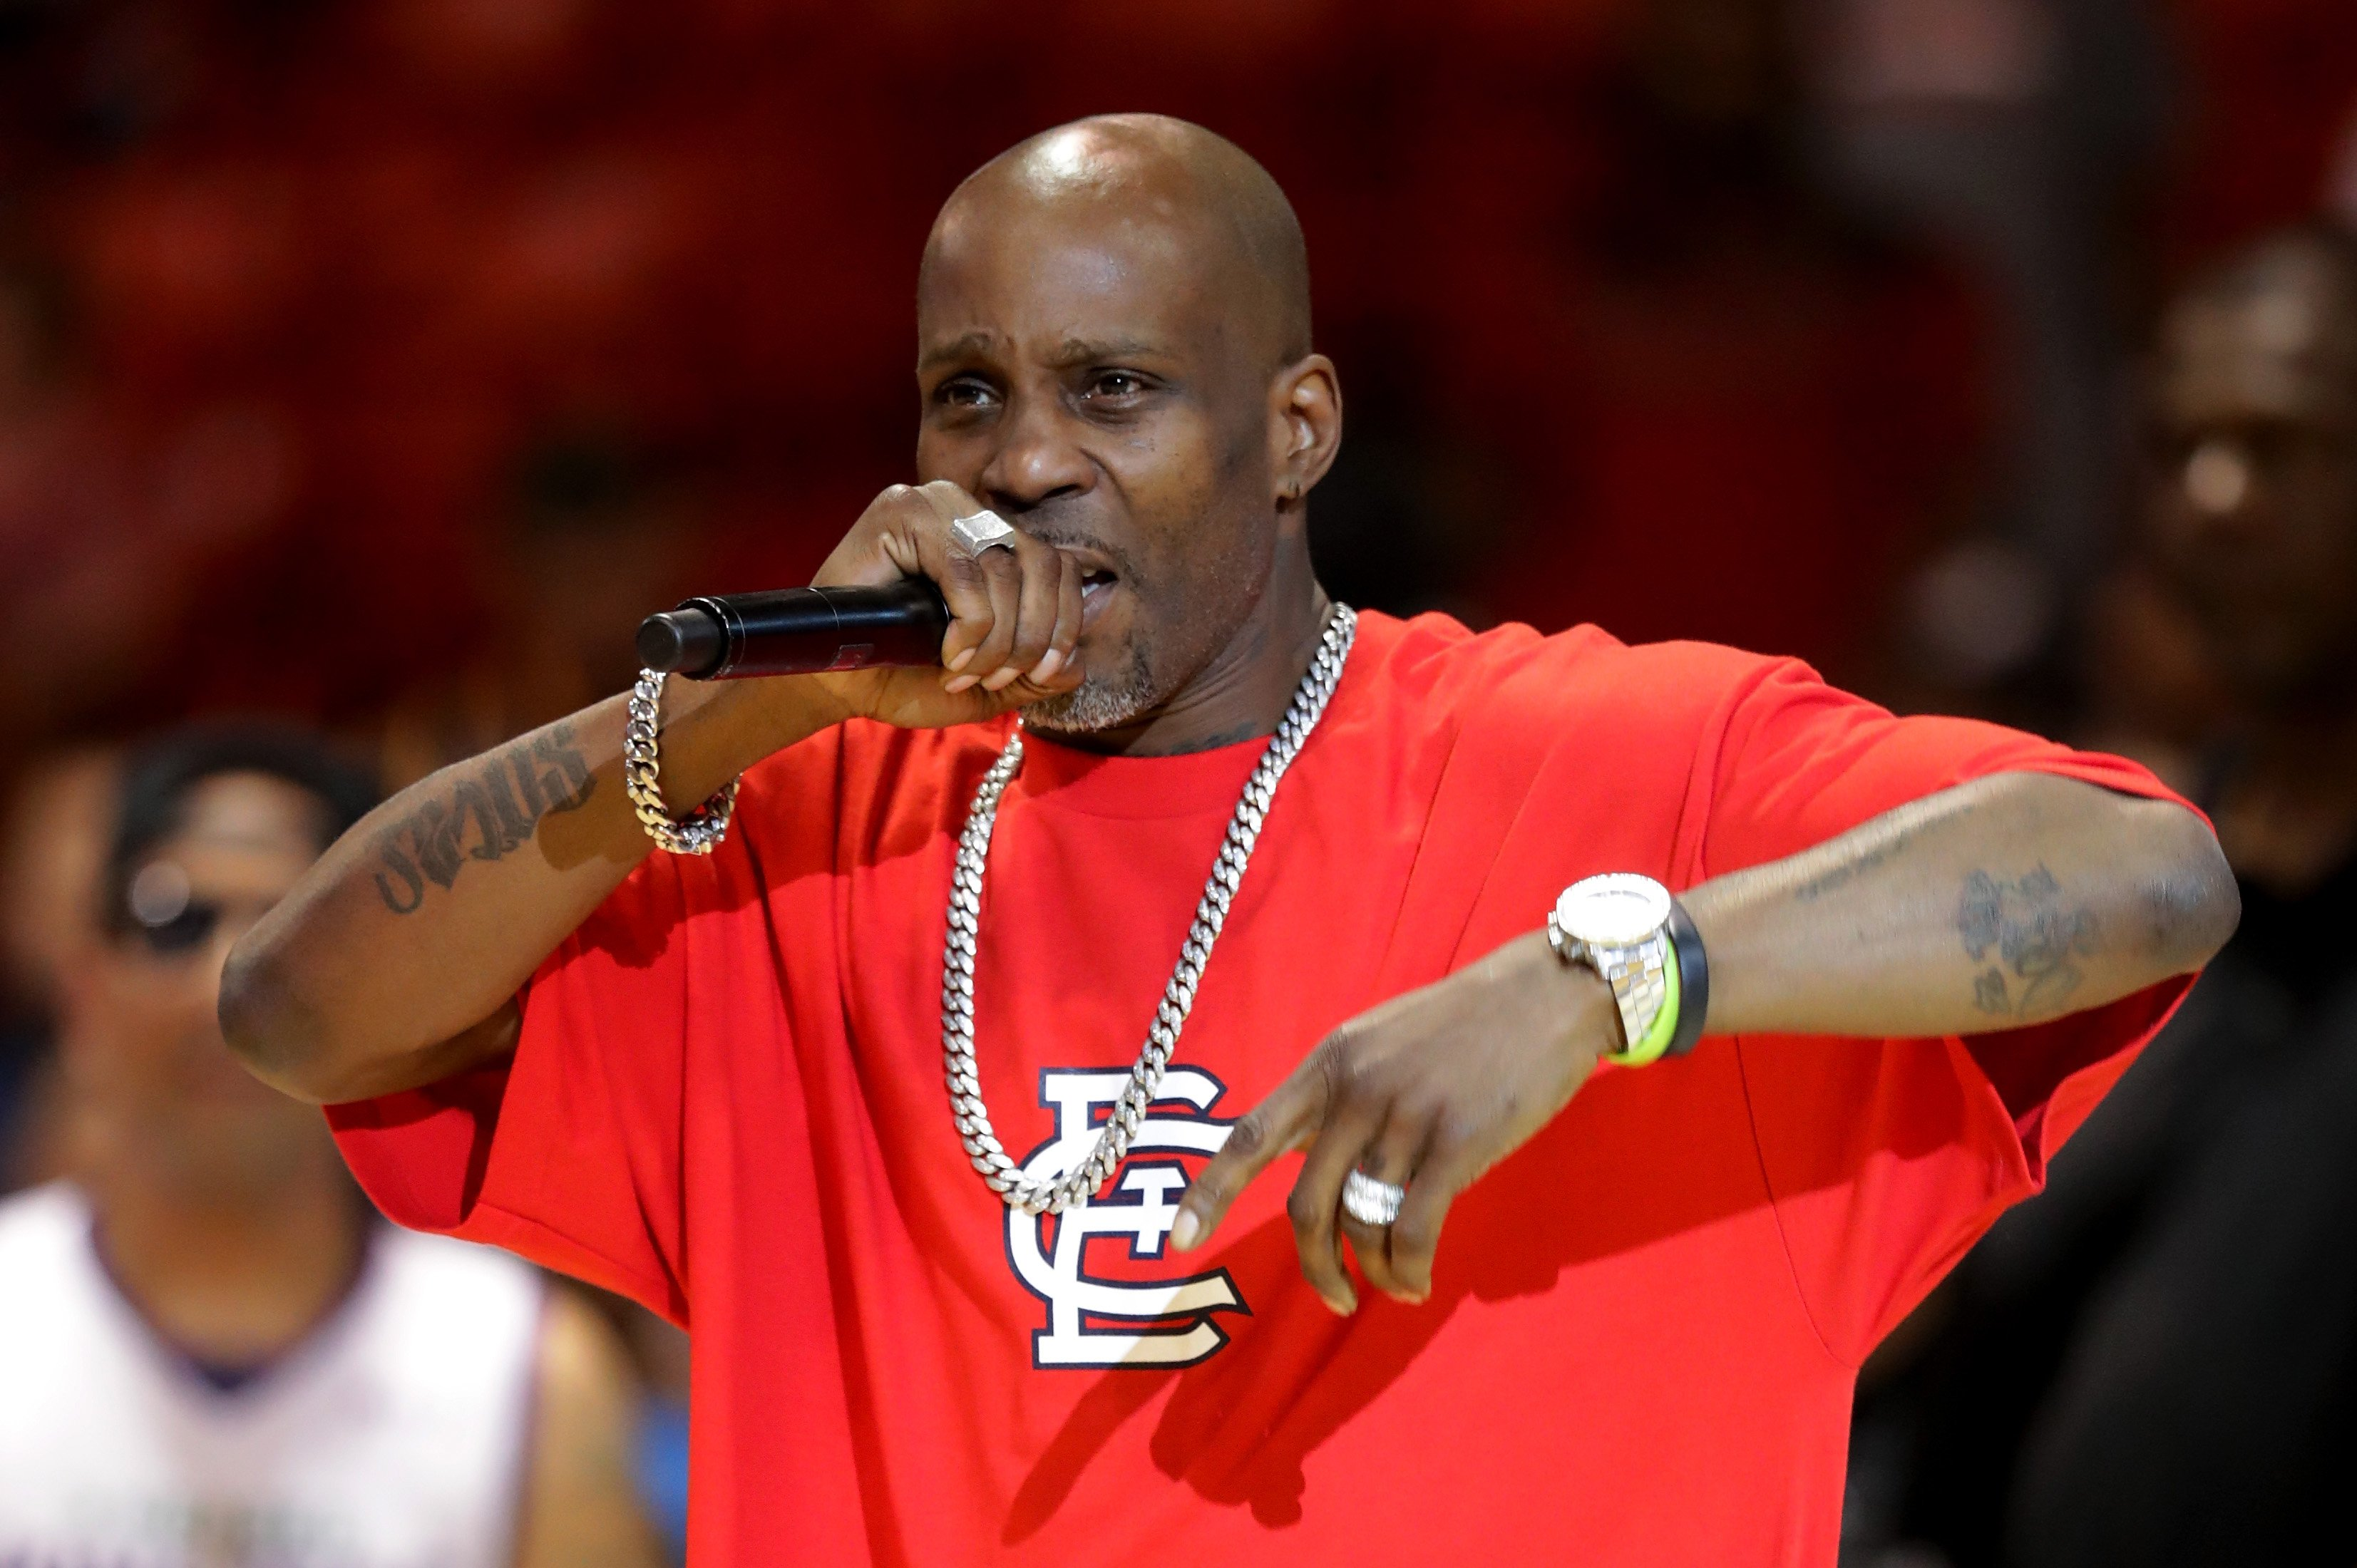 Rapper DMX performs during week five of the BIG3 three on three basketball league at UIC Pavilion on July 23, 2017   Photo: Getty Images